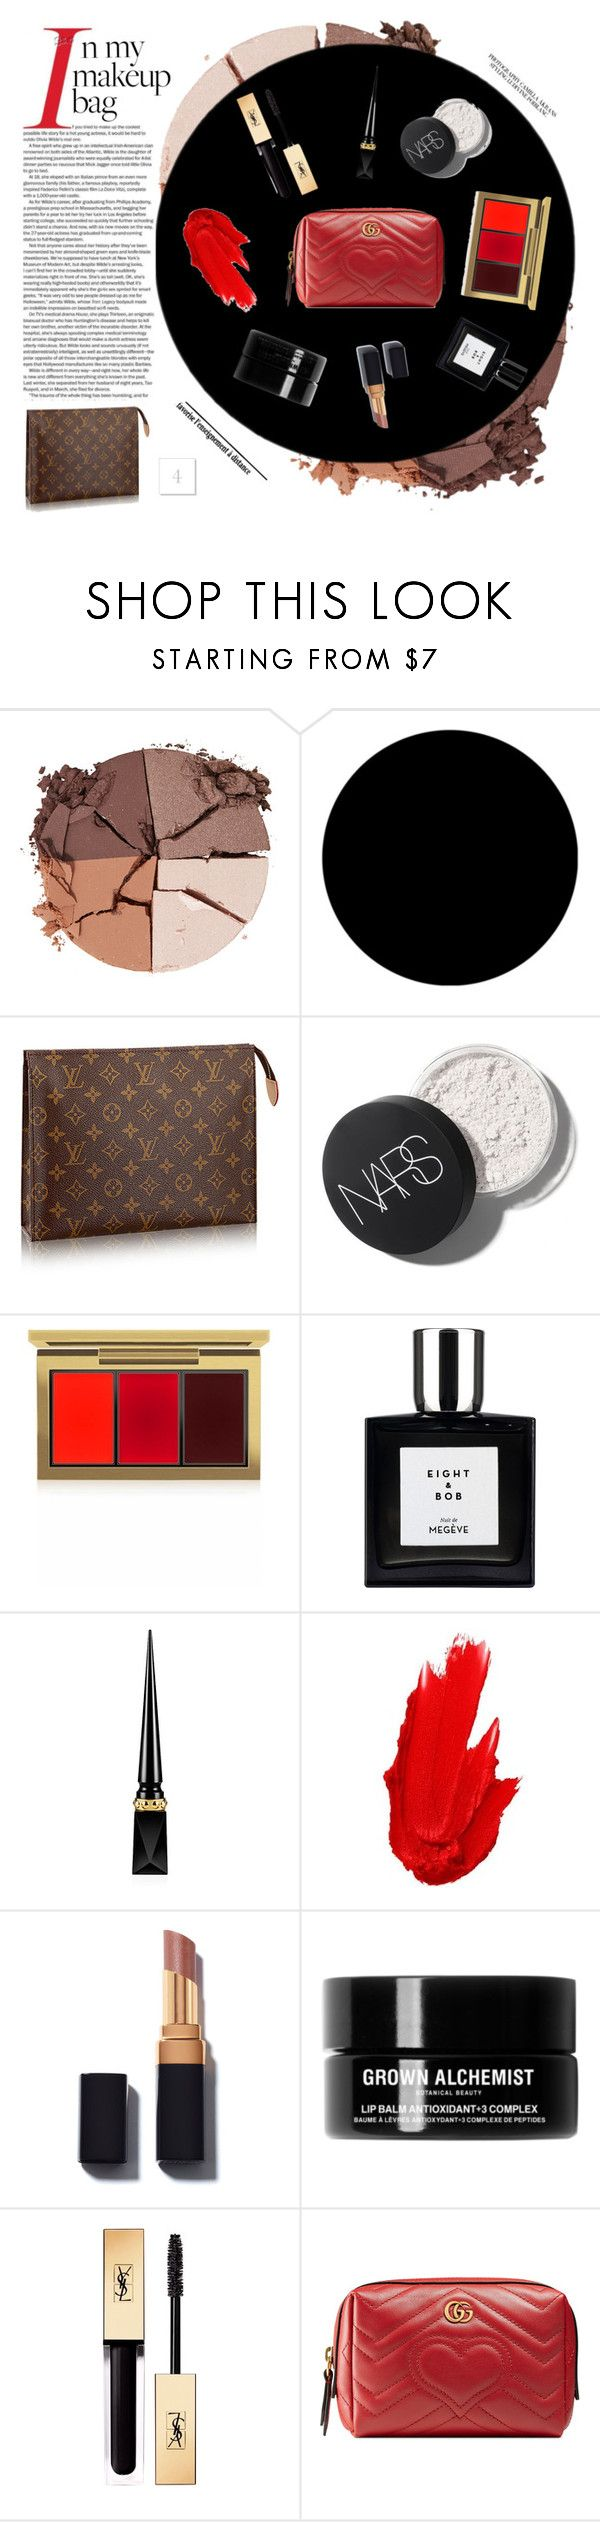 """""""What's in Your Makeup Bag?"""" by luxthrill ❤ liked on Polyvore featuring beauty, lilah b., Wall Pops!, MAC Cosmetics, Christian Louboutin, Maybelline, Grown Alchemist, Yves Saint Laurent, Gucci and Beauty"""